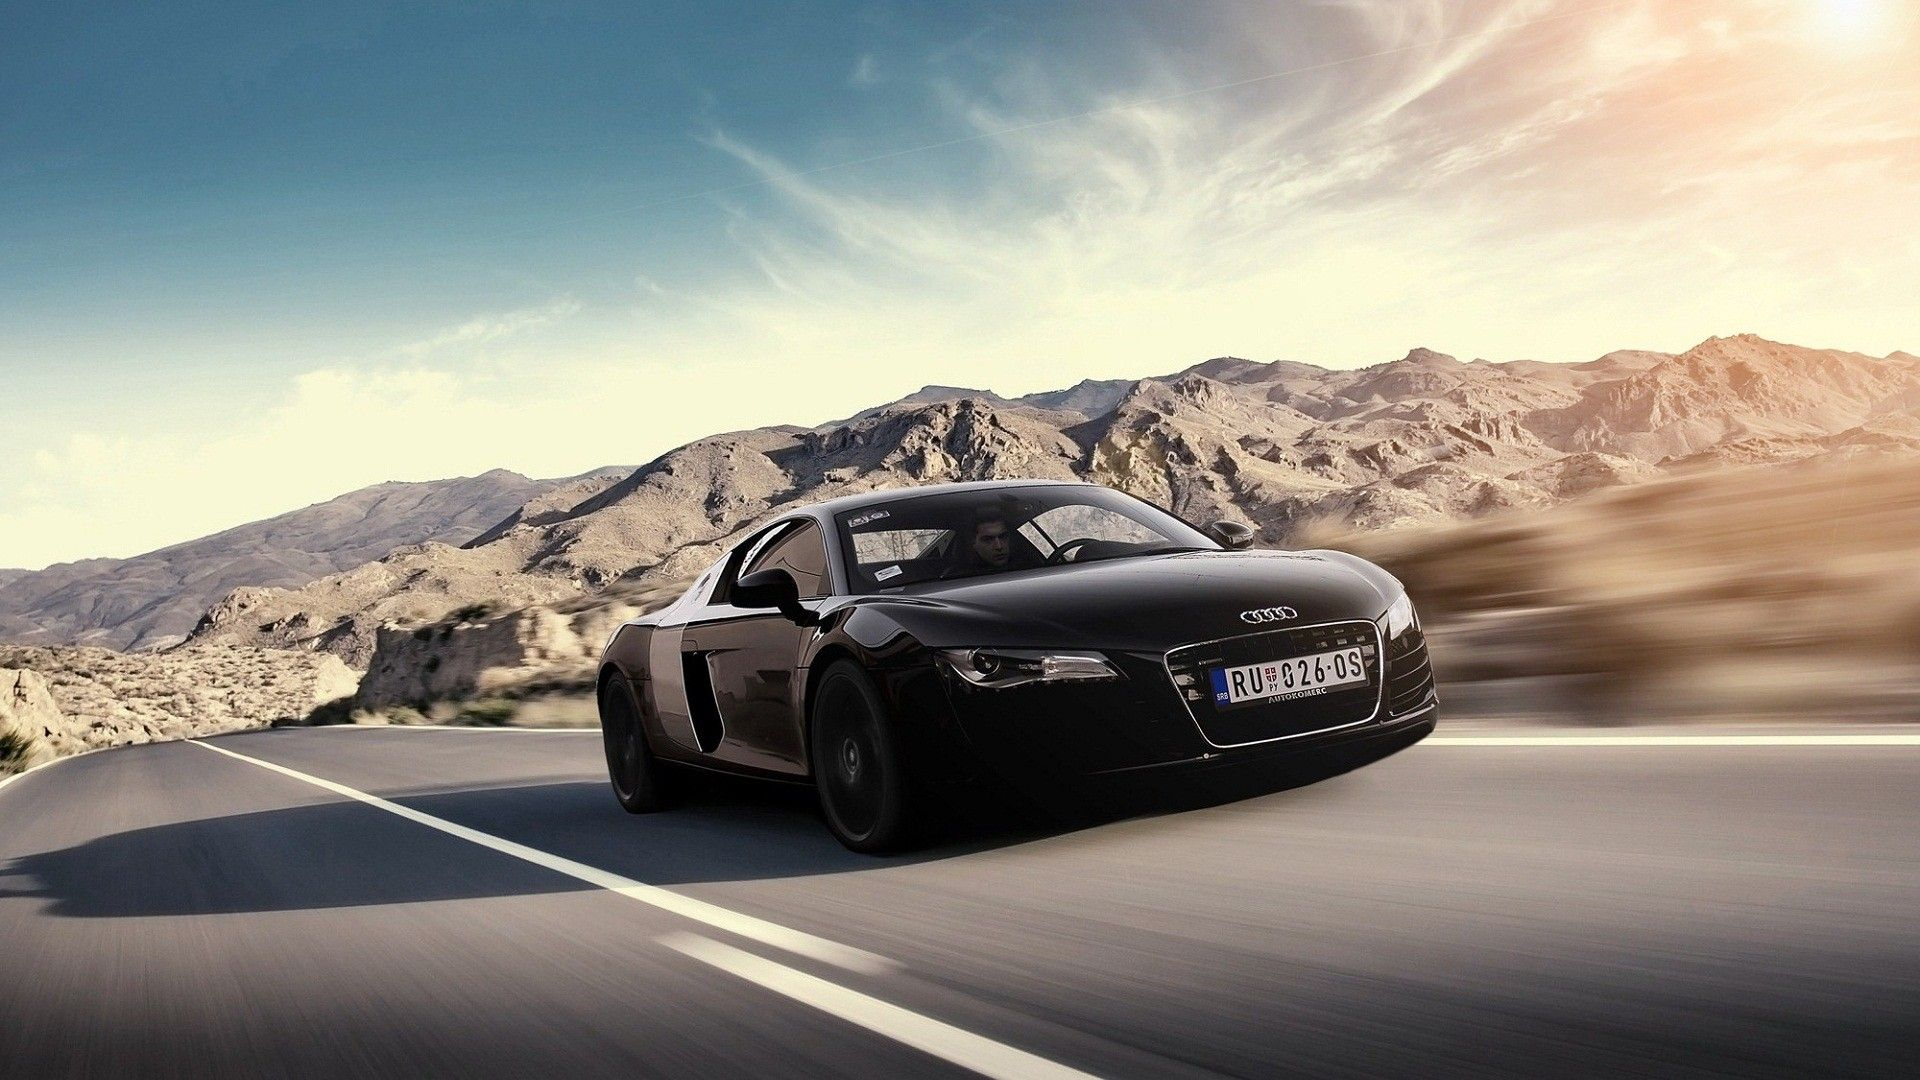 Audi R8 Hd Wallpaper Audi Wallpapers Pinterest